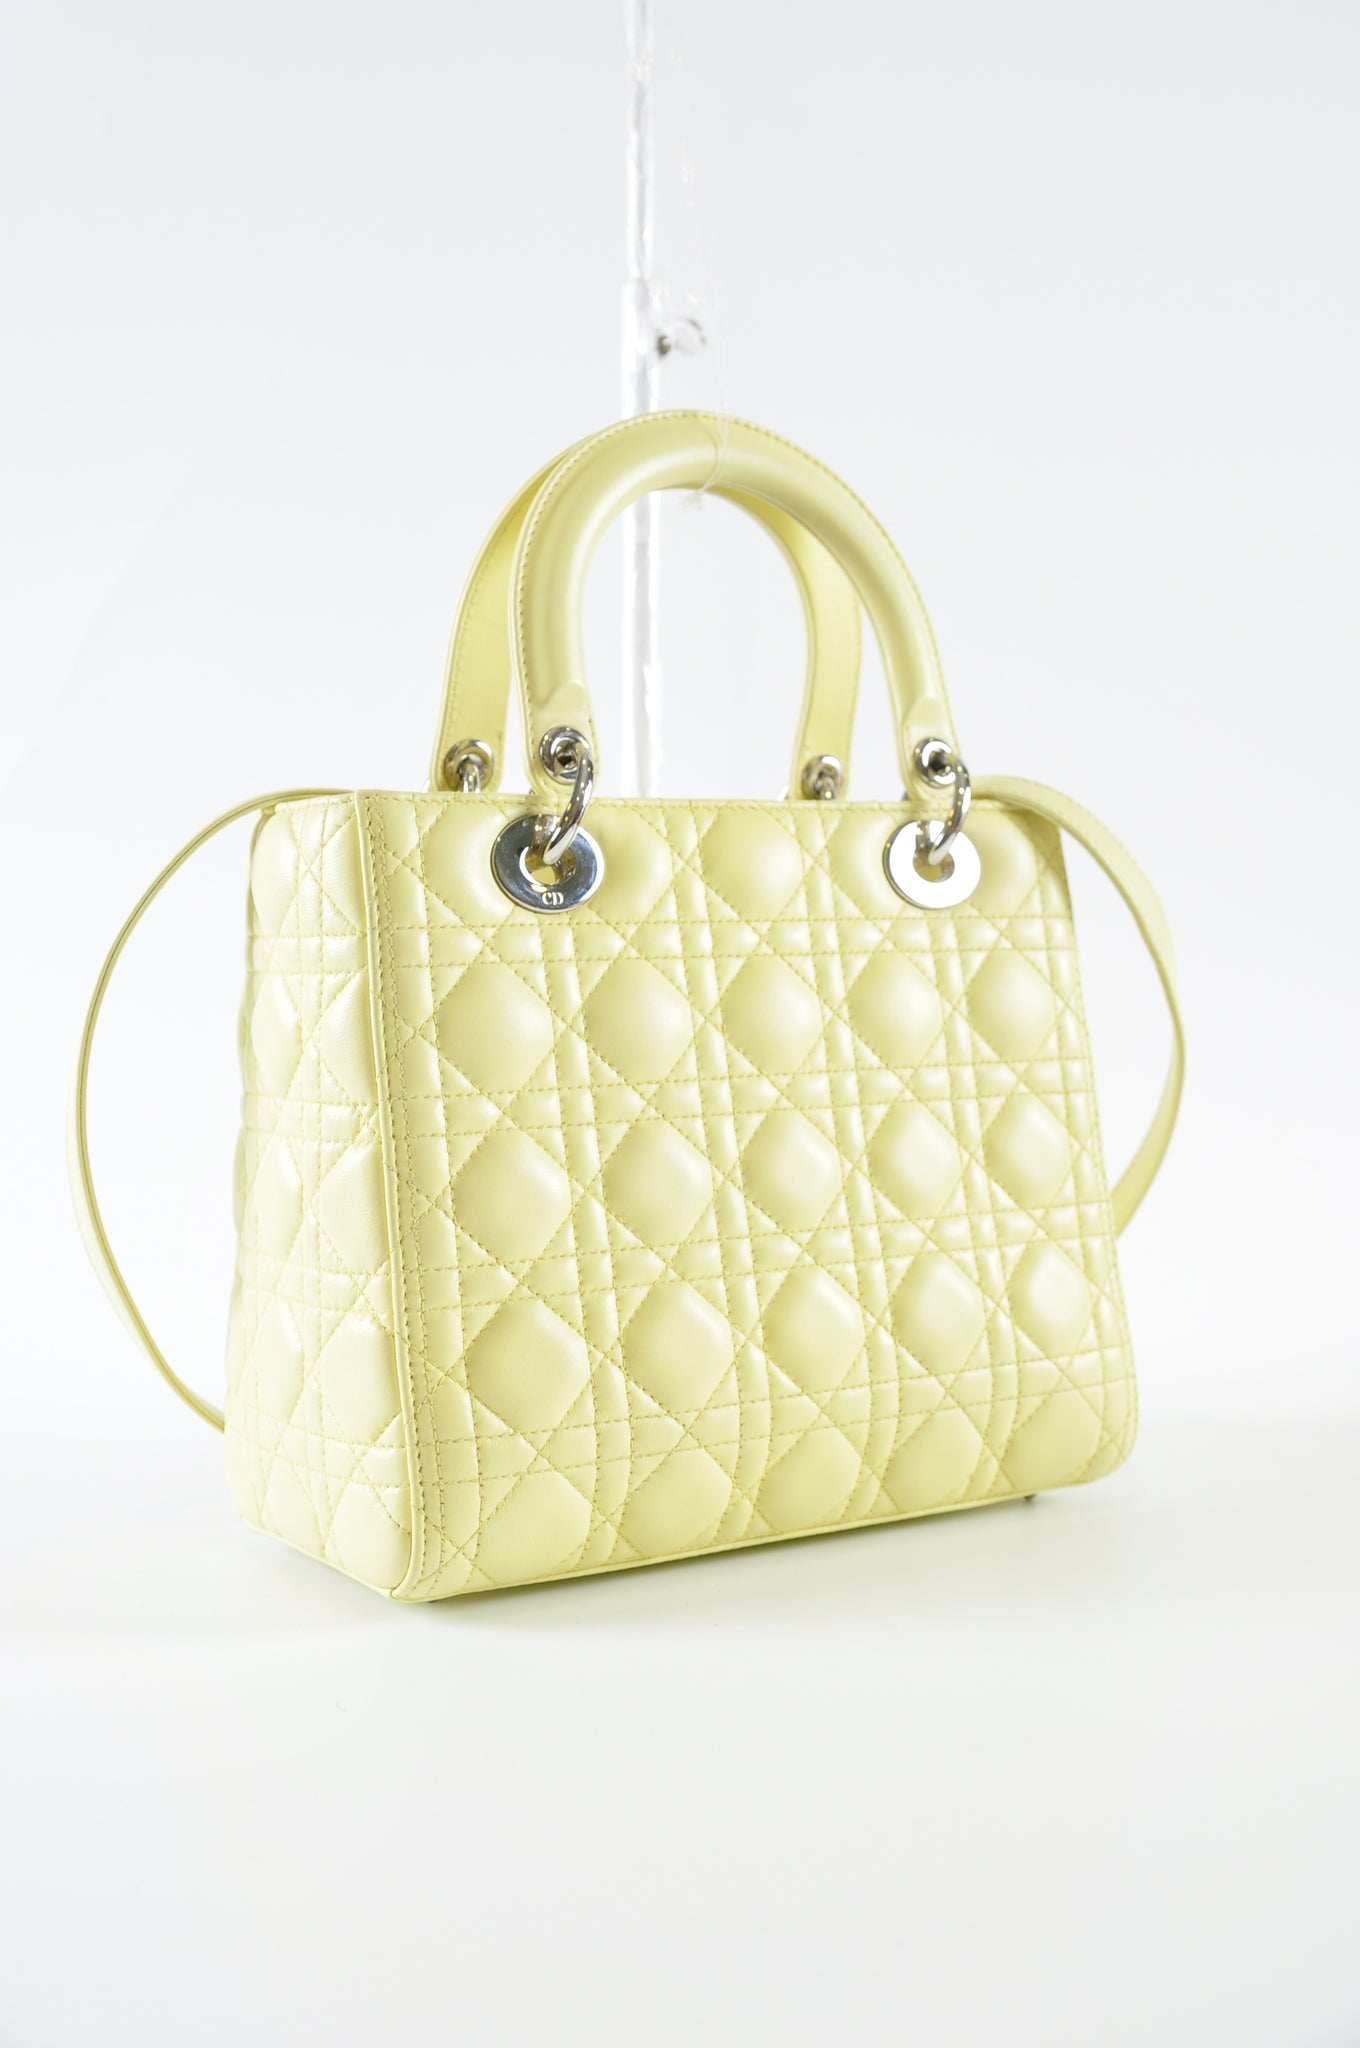 Christian Dior Medium Lady Dior in Pastel Yellow 18-MA-0113 - Glampot